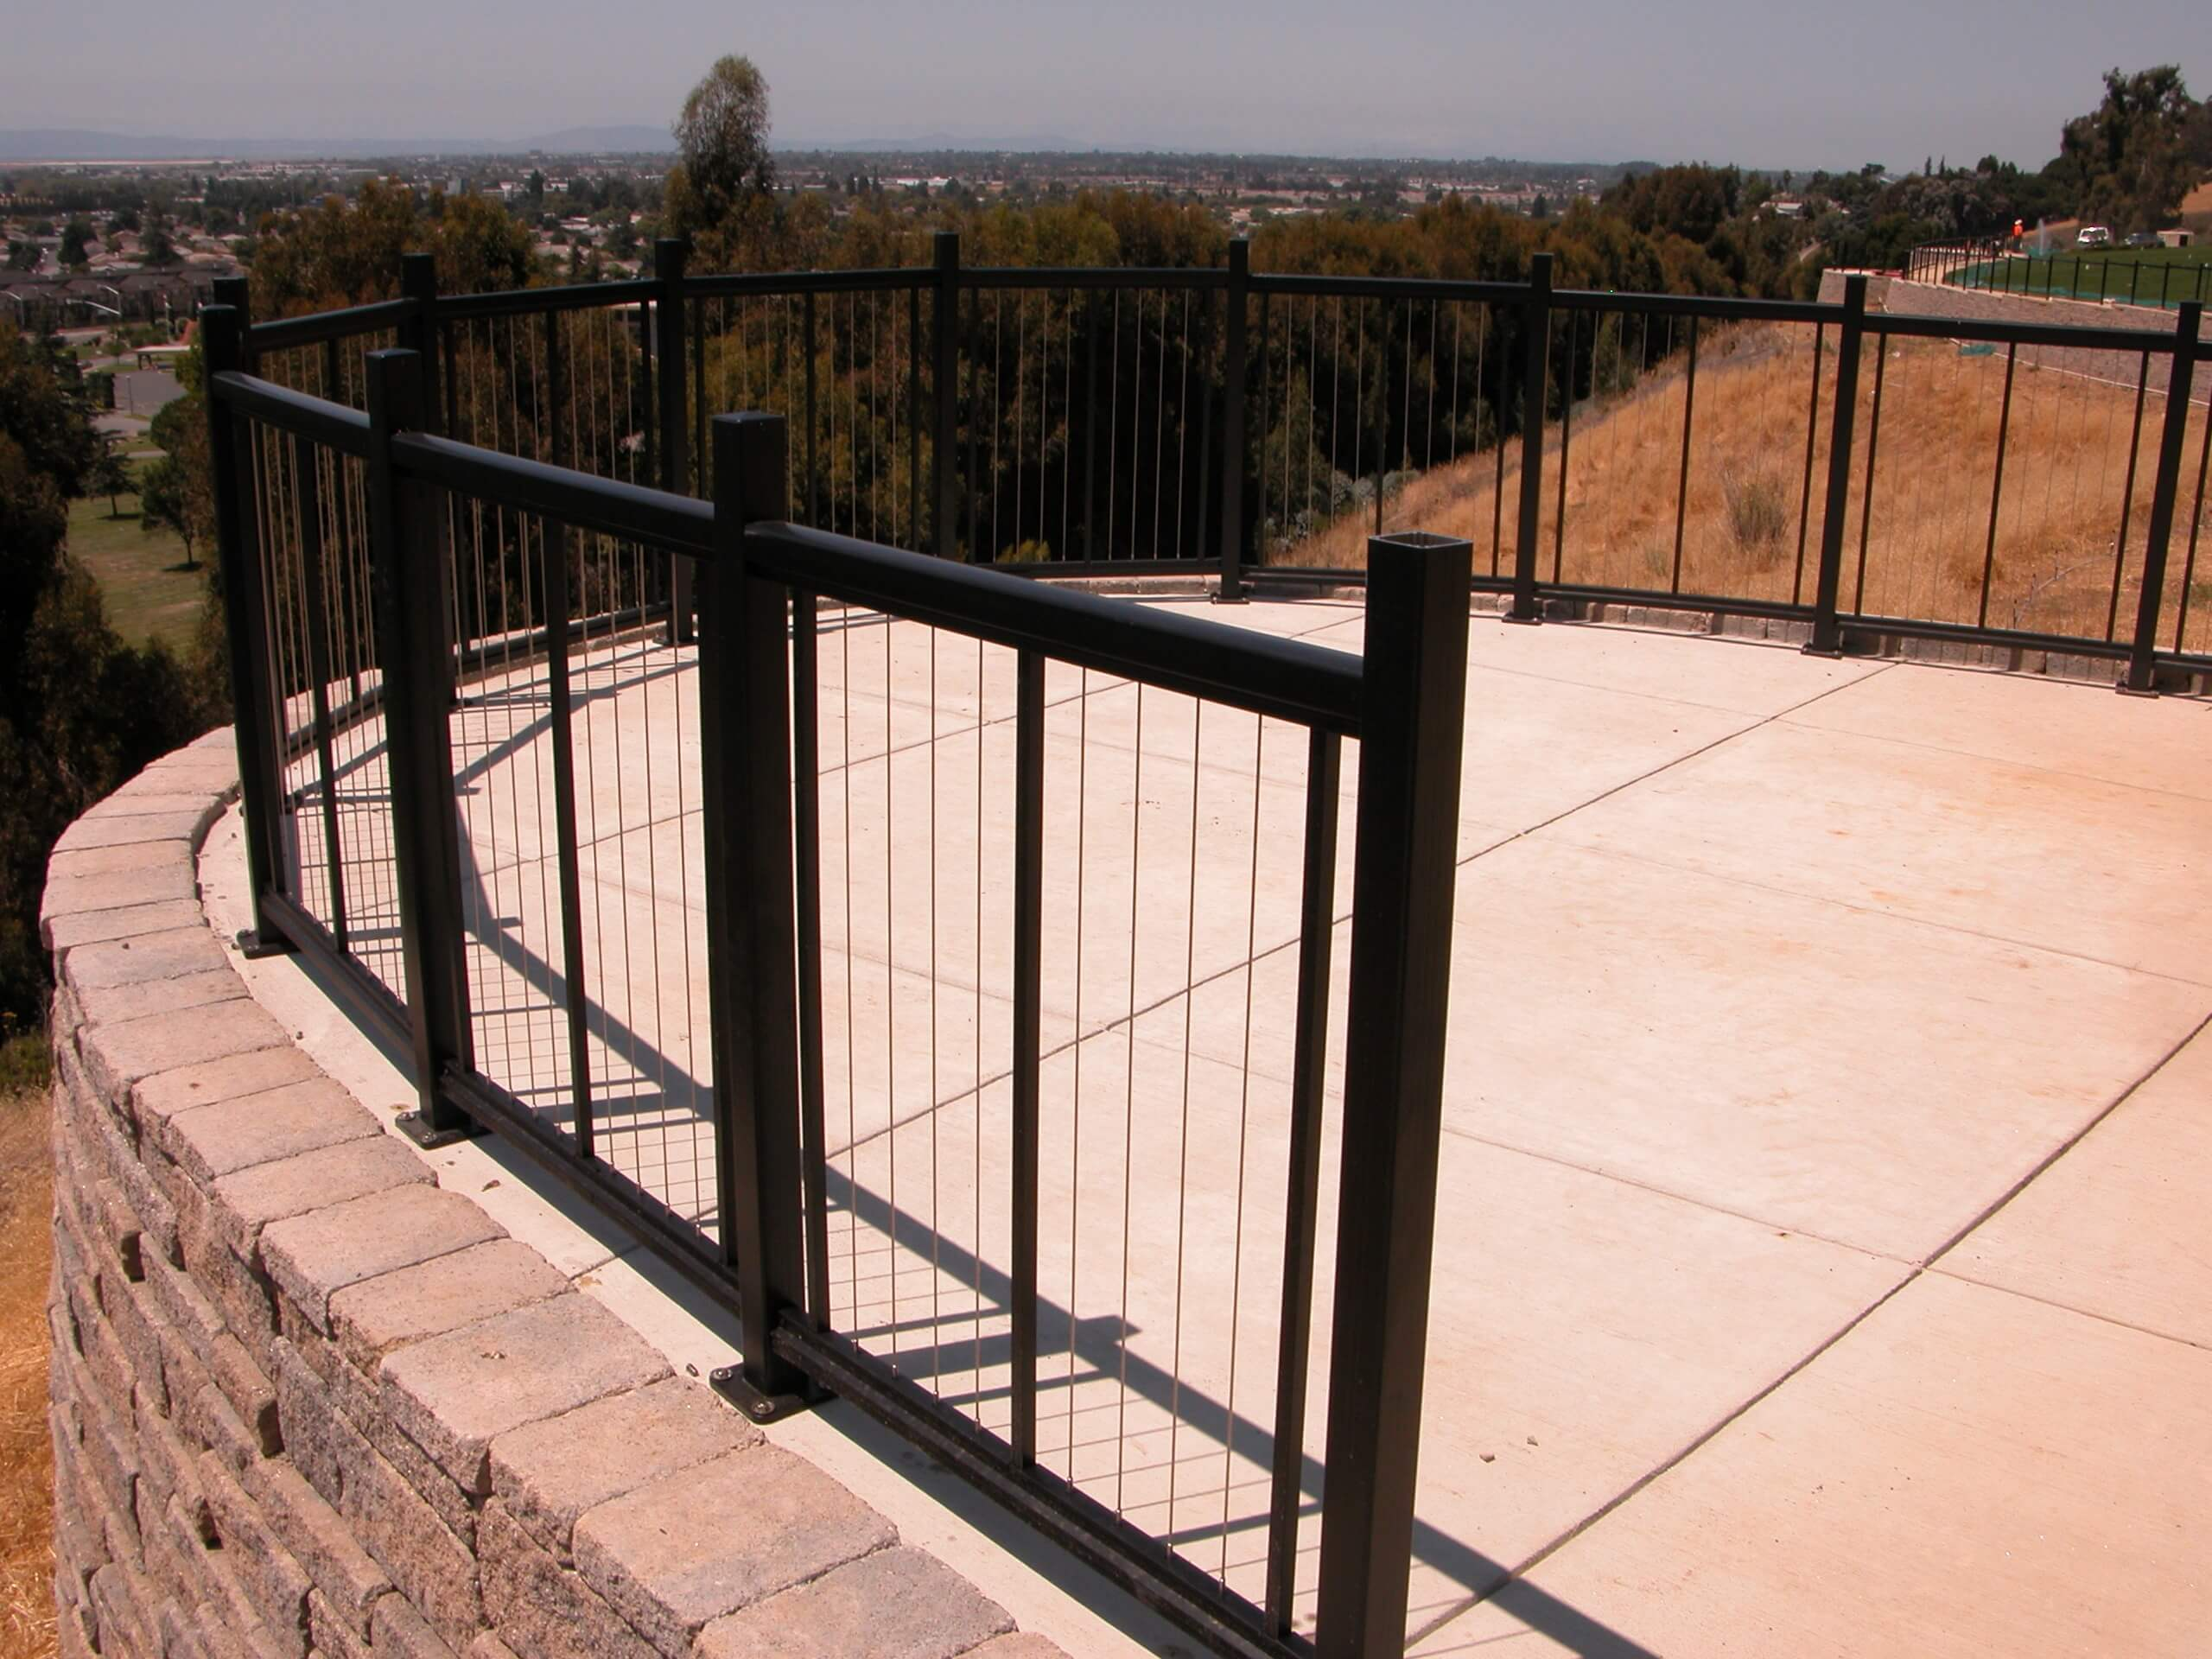 Cable railing system installed around a curved viewing area in the San Francisco Bay Area